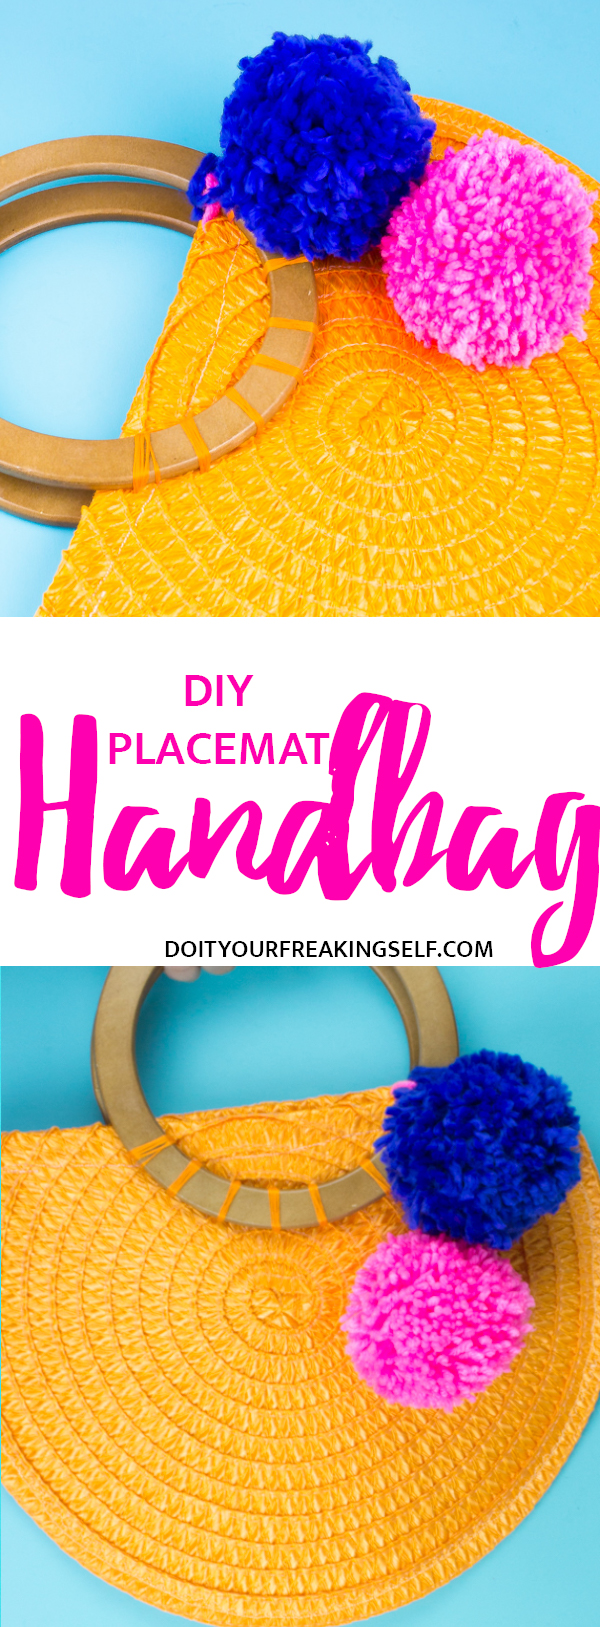 Take some cheap dollar store placemats and turn them into a bright and colorful DIY Placemat Handbag with a sew or glue method!